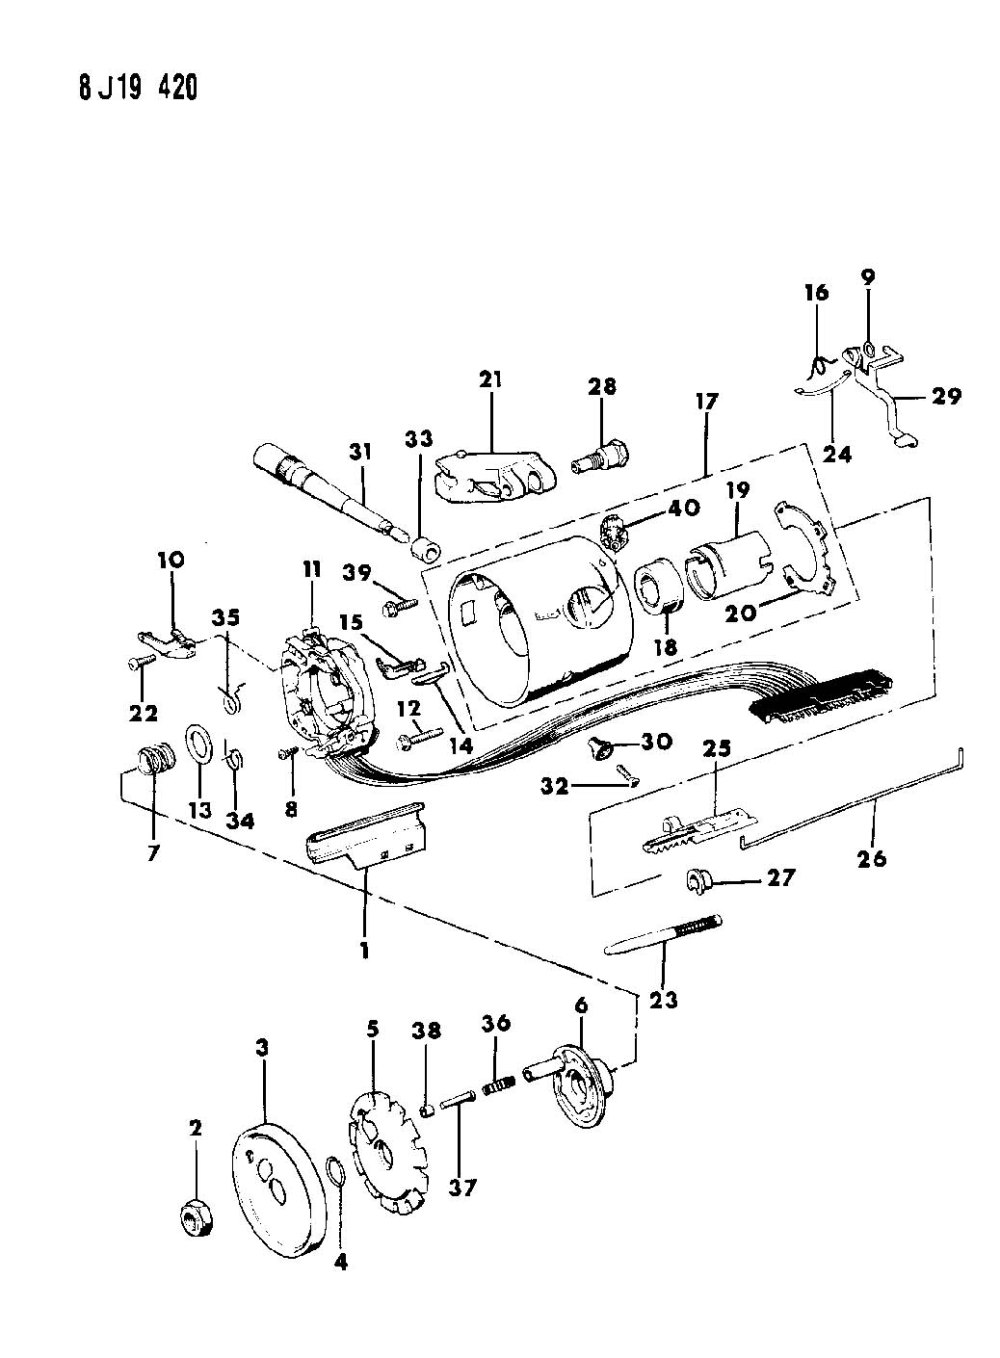 medium resolution of yj steering column wiring diagram simple wiring post rh 16 asiagourmet igb de 89 jeep wrangler steering column 1988 jeep wrangler steering column diagram